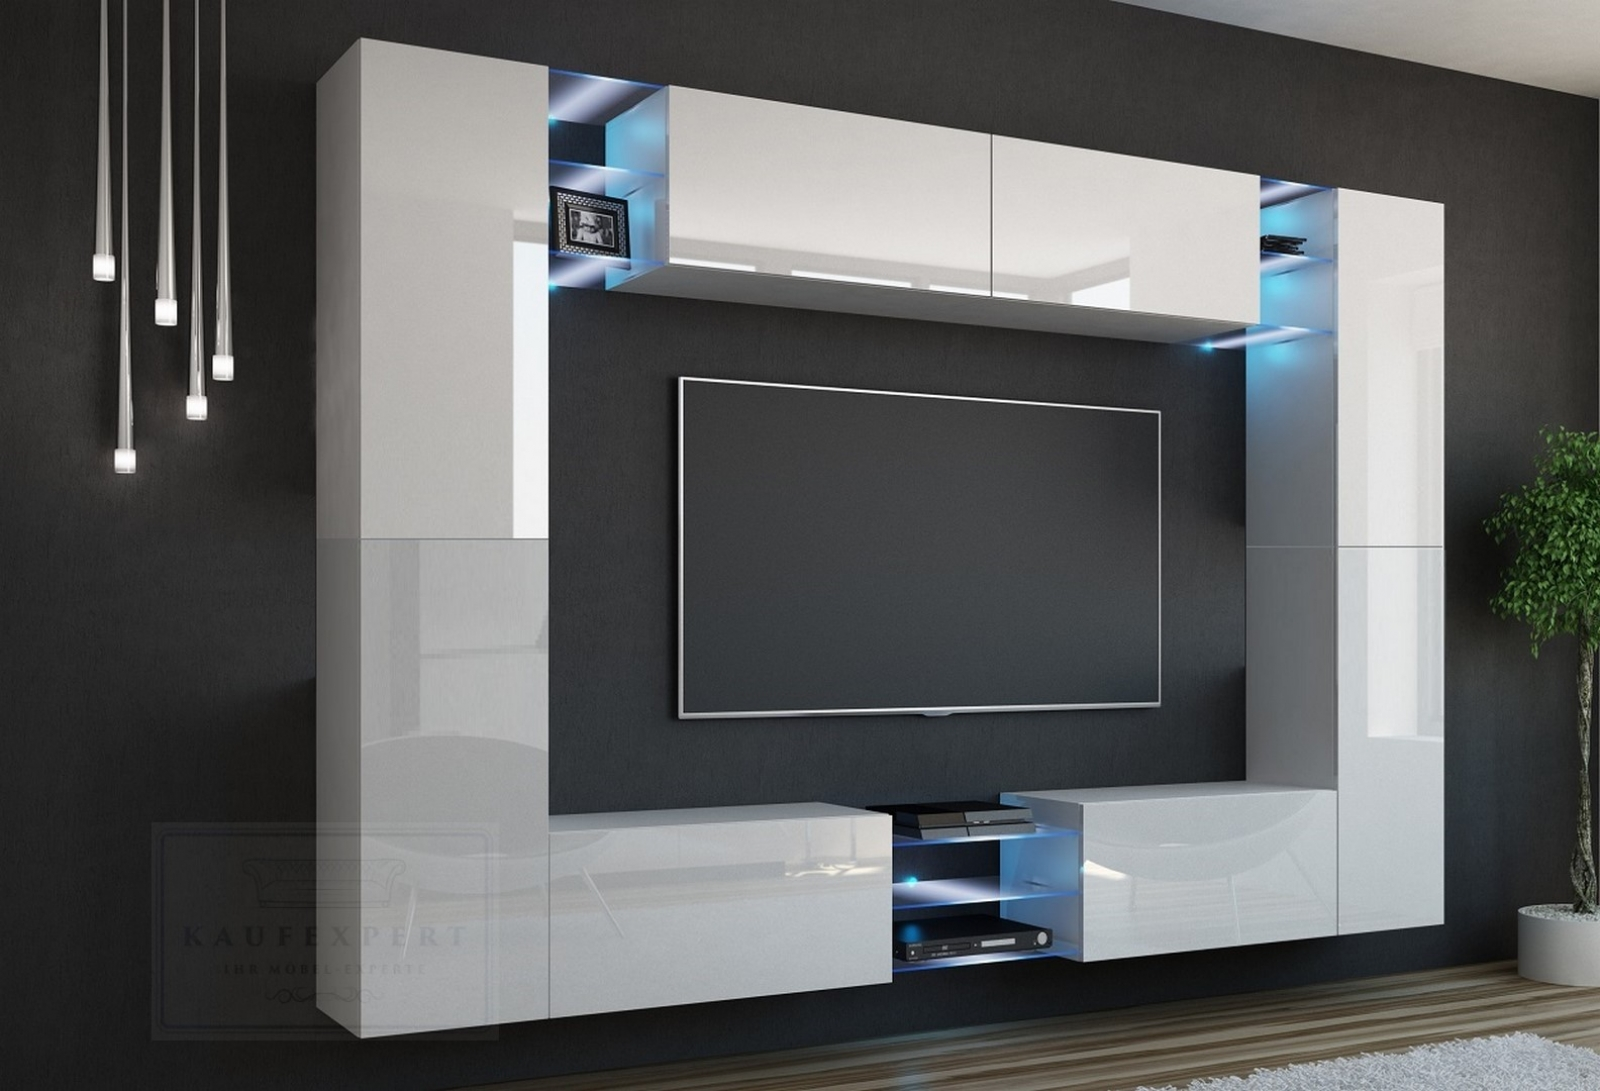 kaufexpert wohnwand kino wei hochglanz wei mediawand medienwand design modern led. Black Bedroom Furniture Sets. Home Design Ideas